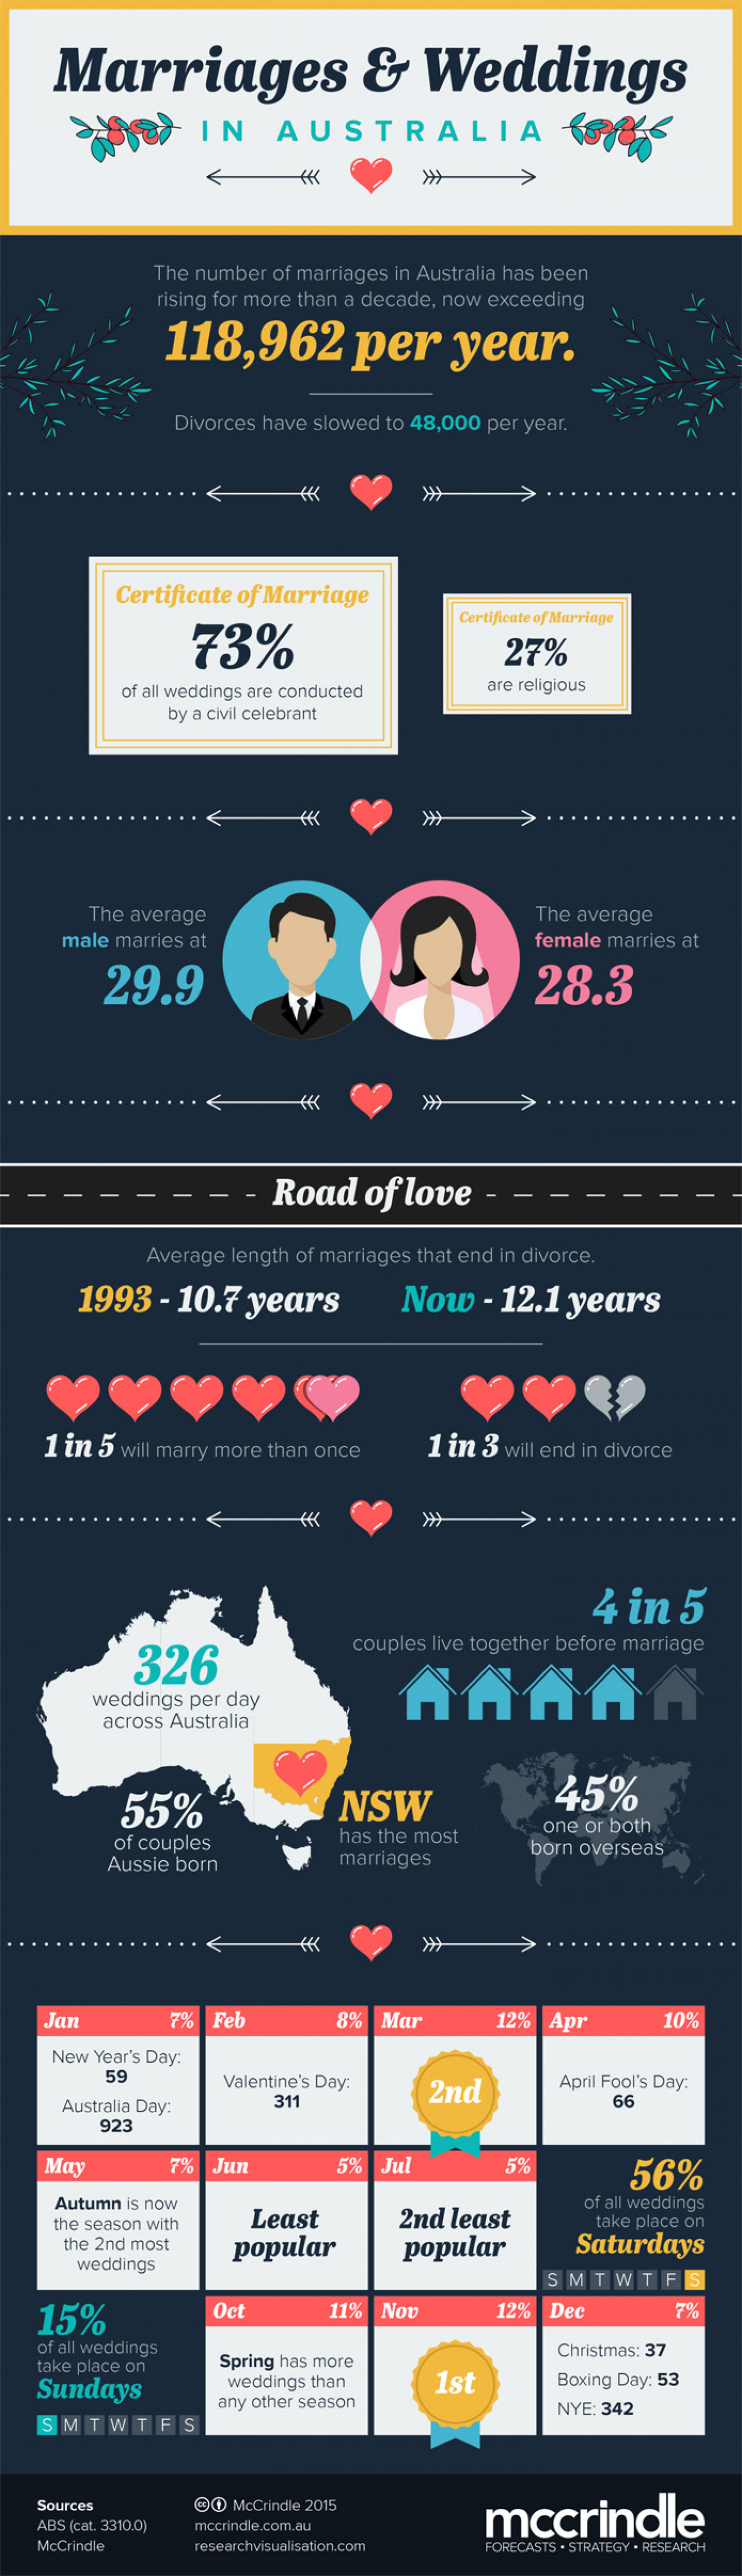 Marriages and Weddings in Australia Infographic